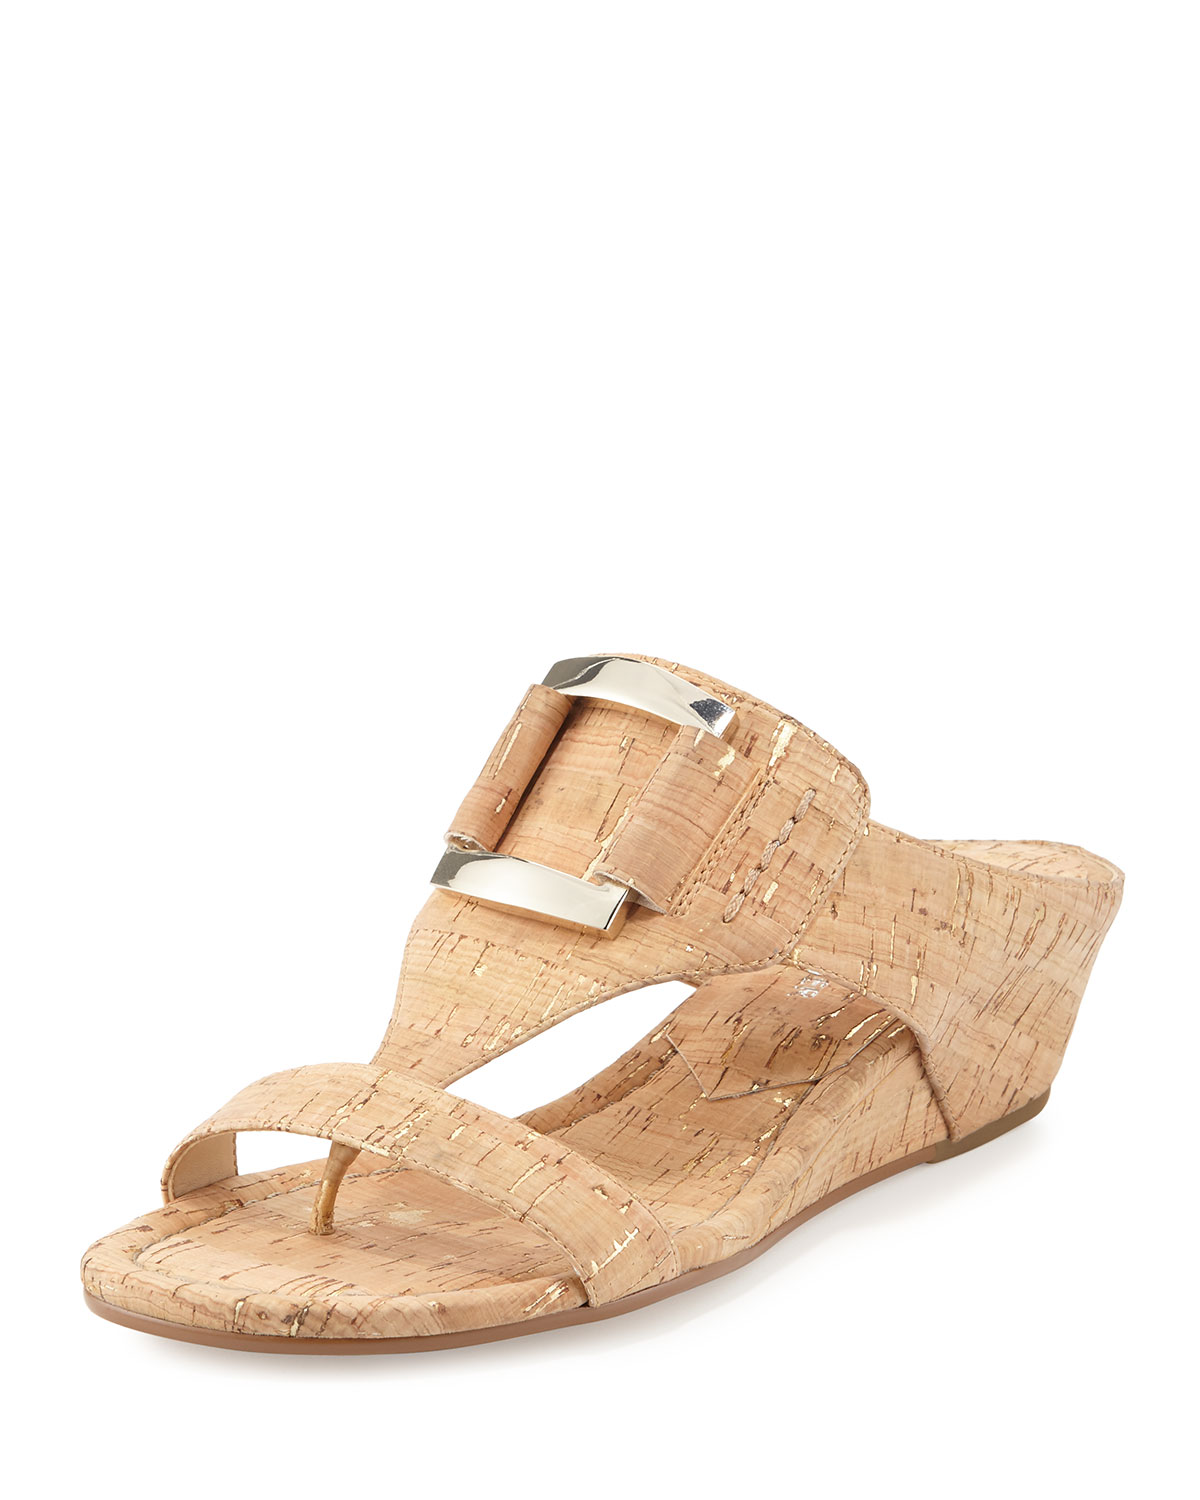 9feee27af576 Donald J Pliner Daun Buckle Cork Wedge Sandal